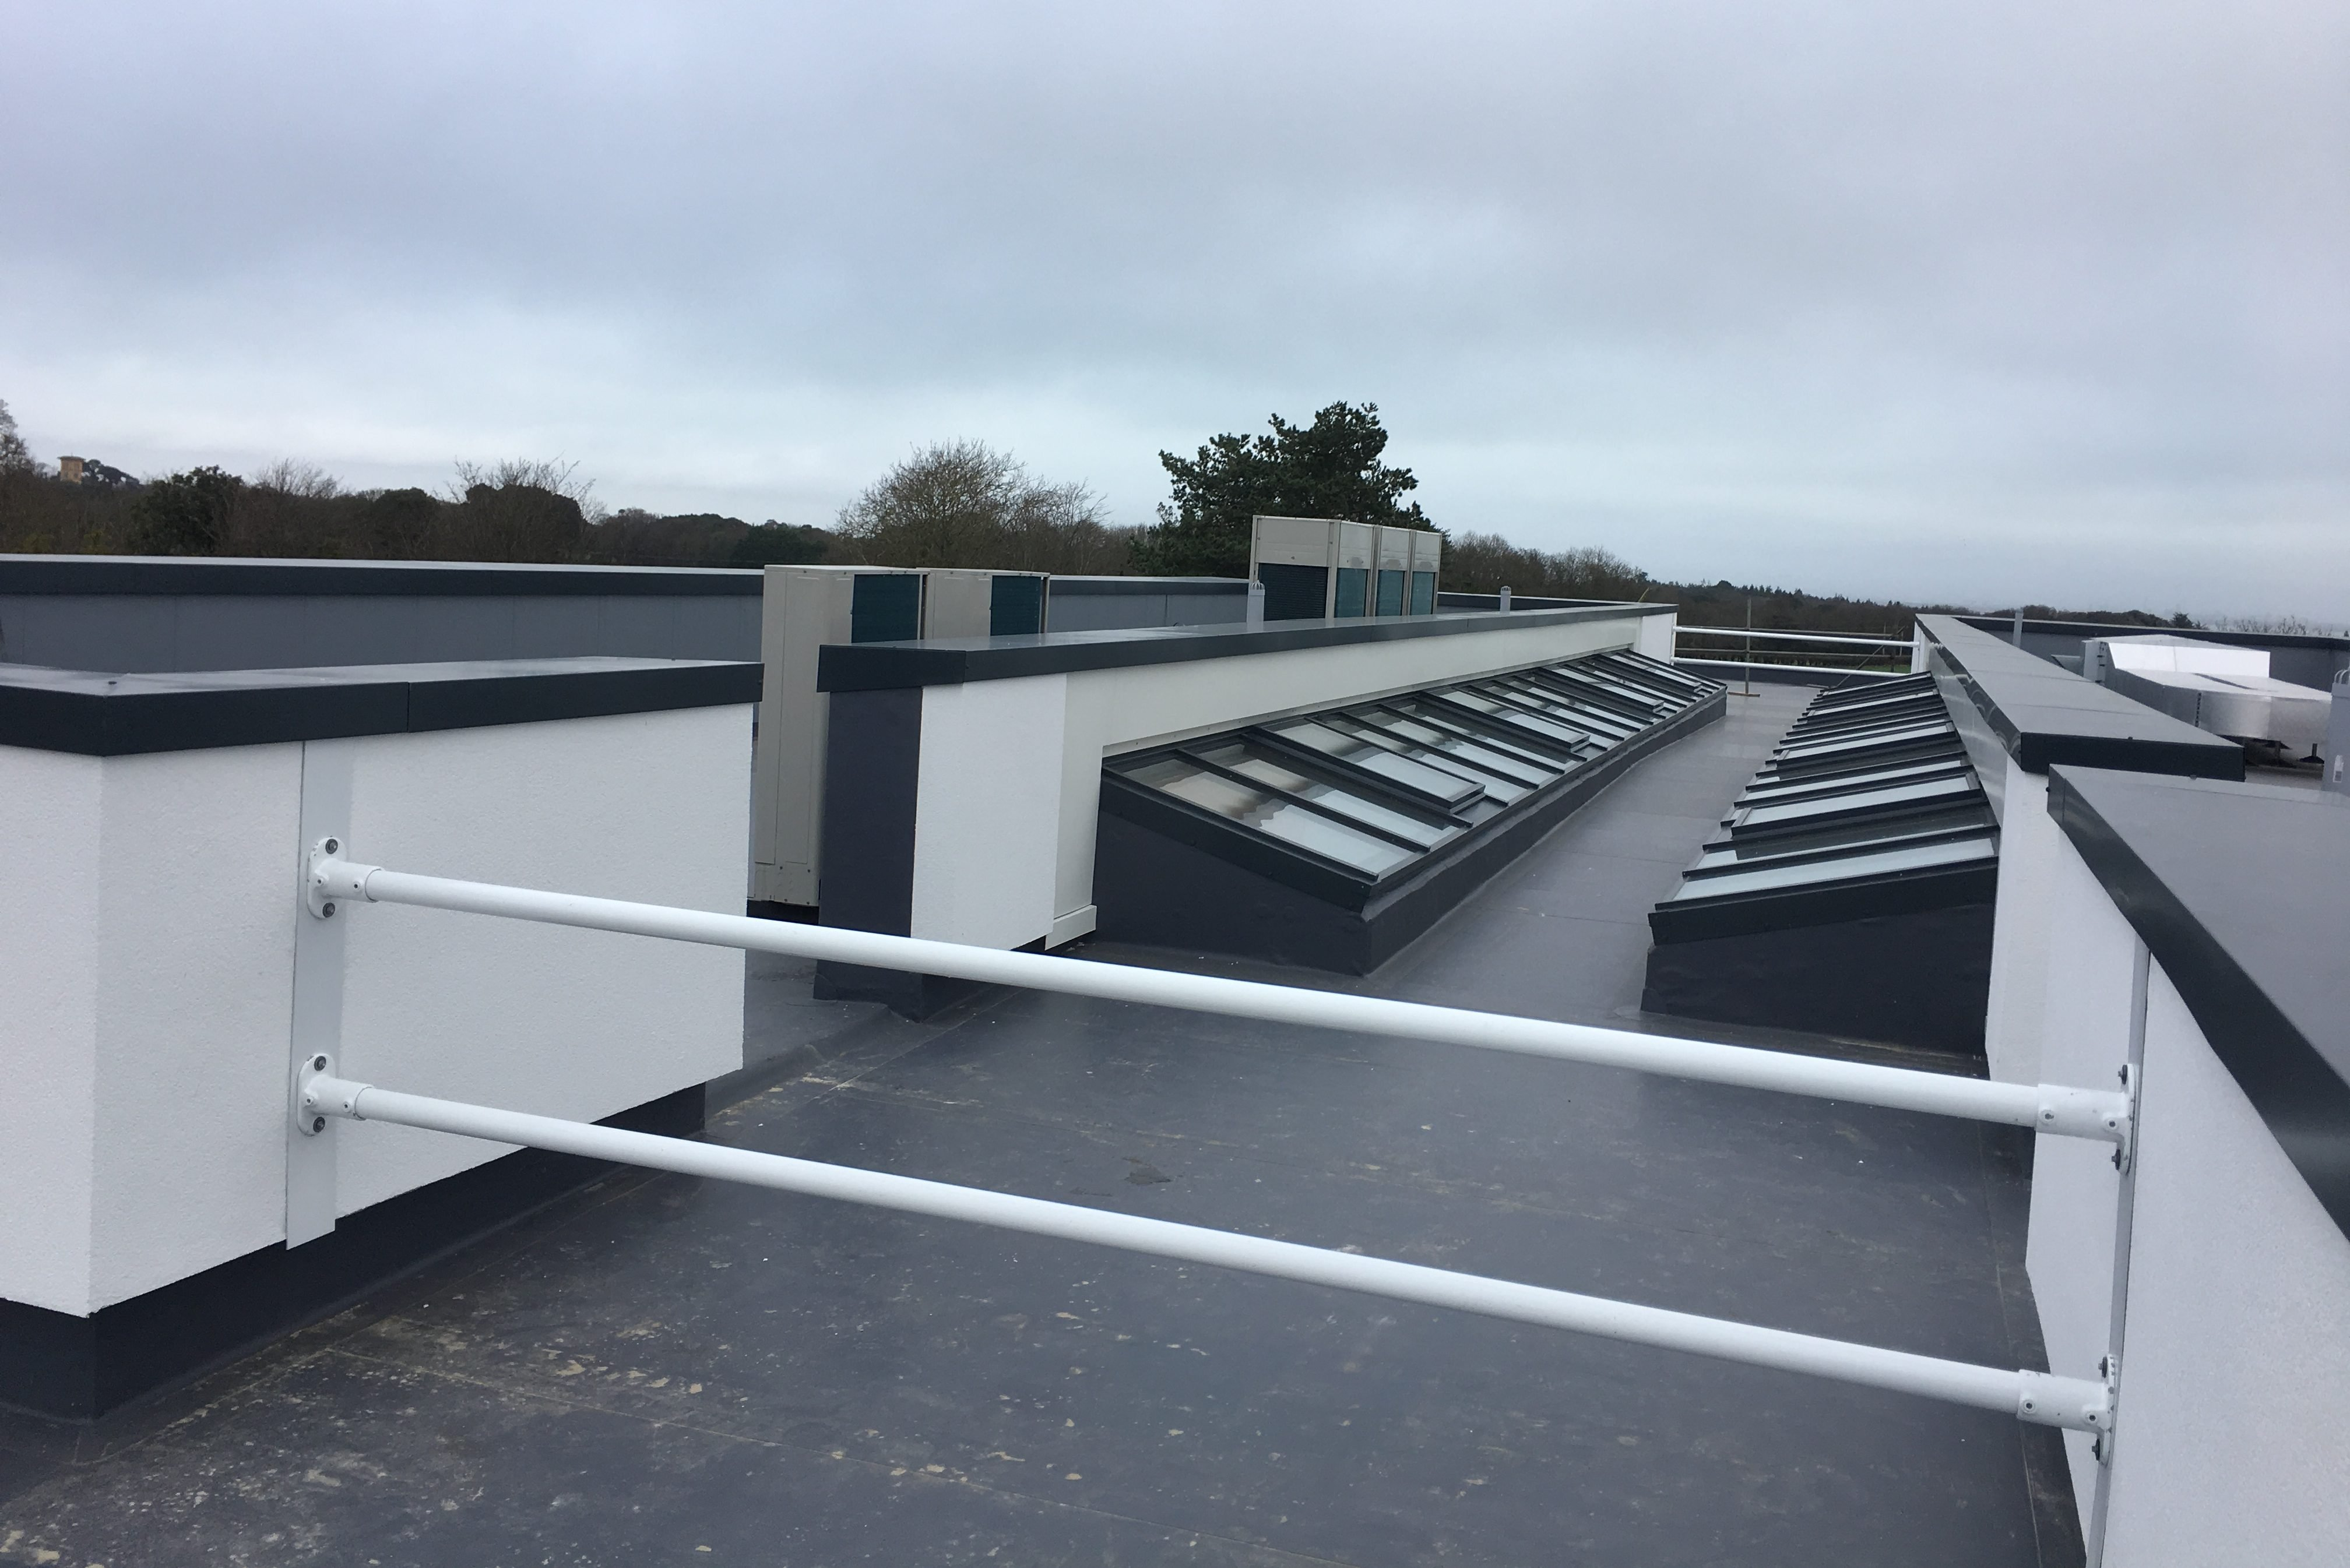 Roofing Cladding And Building Ltd